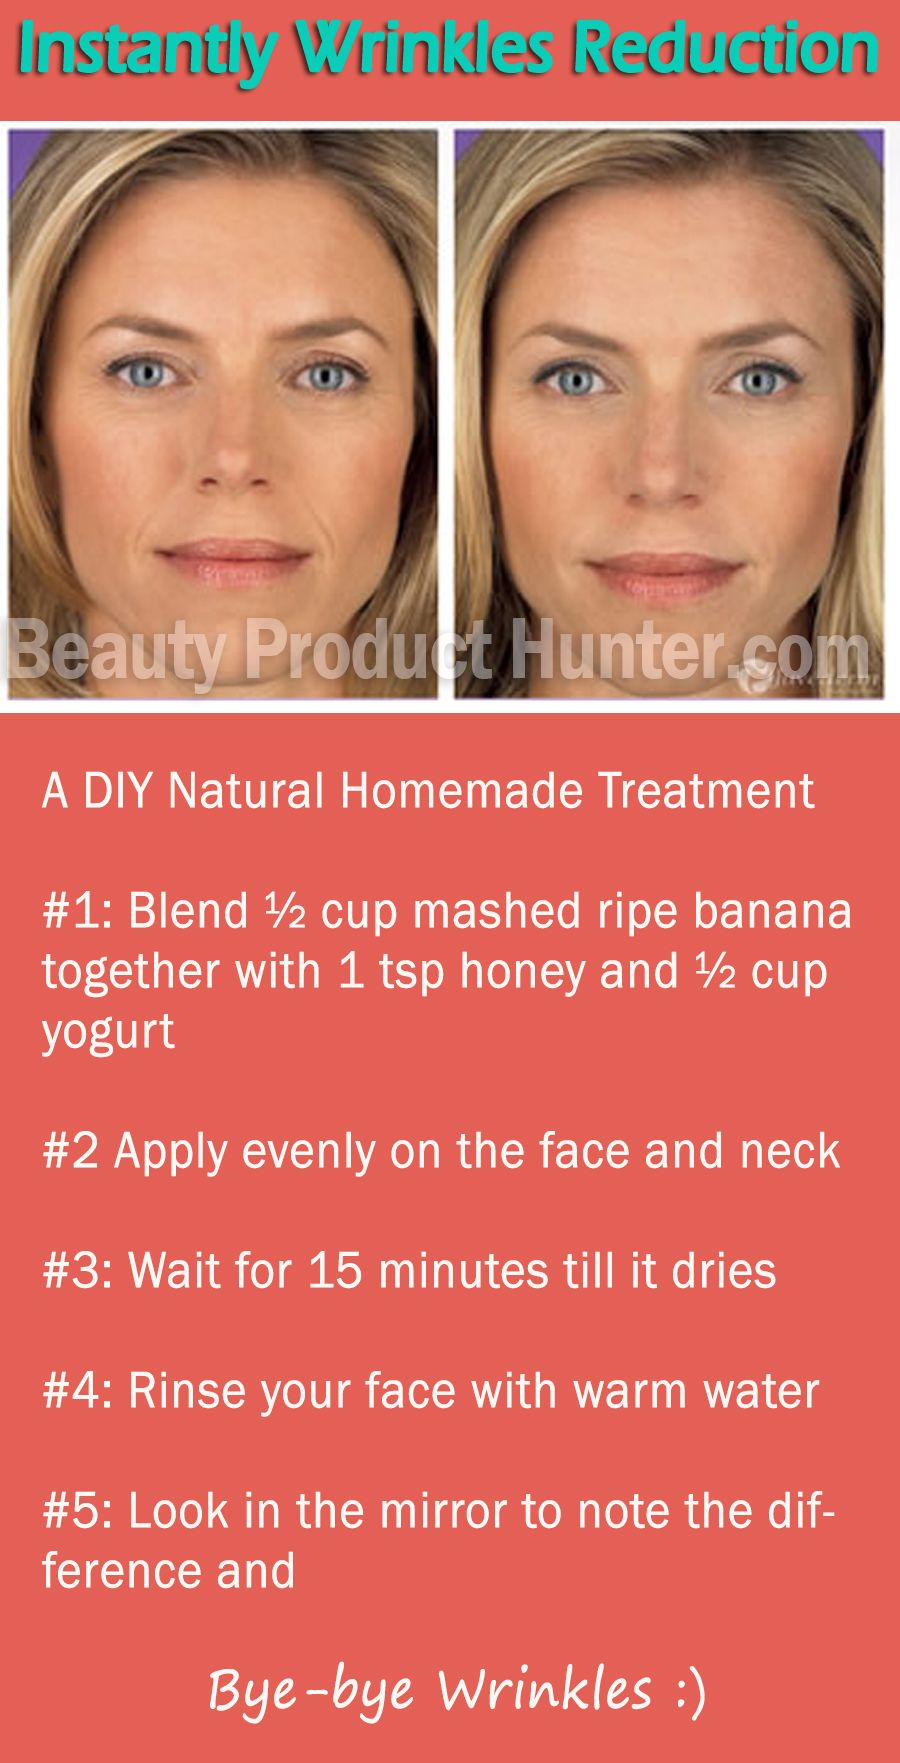 How To Instantly Lift Wrinkles With Natural Beauty Ingredients At Your Home Fin Natural Anti Aging Skin Care Anti Aging Treatments Anti Aging Skin Care Diy